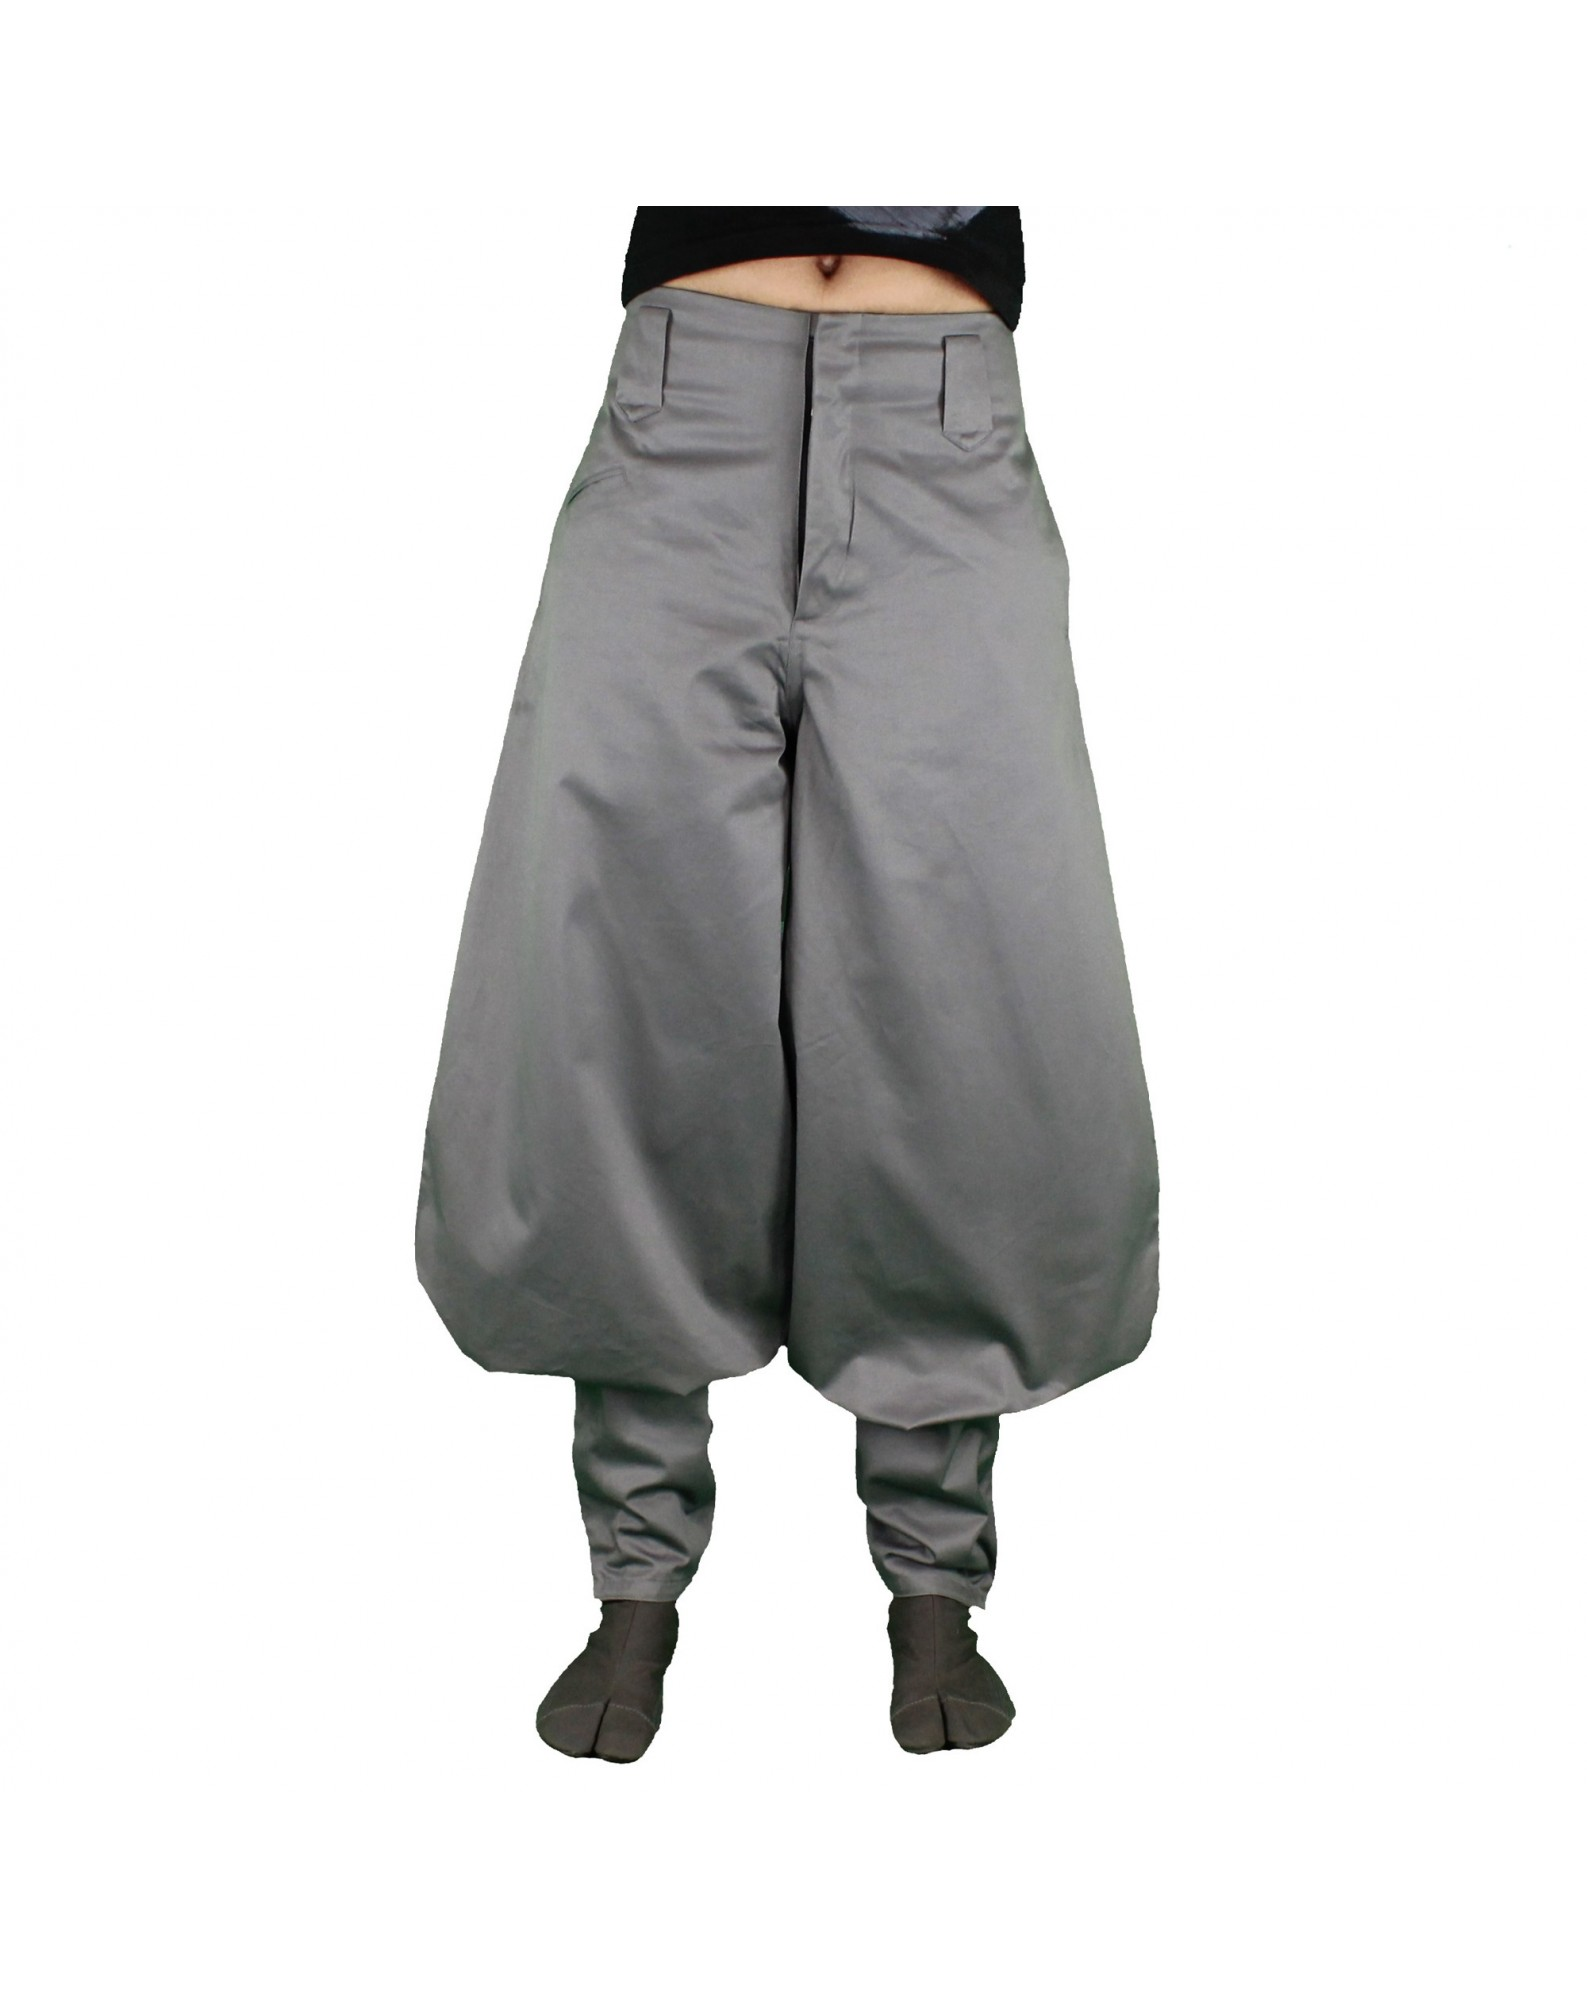 Nikka pants gray & blue